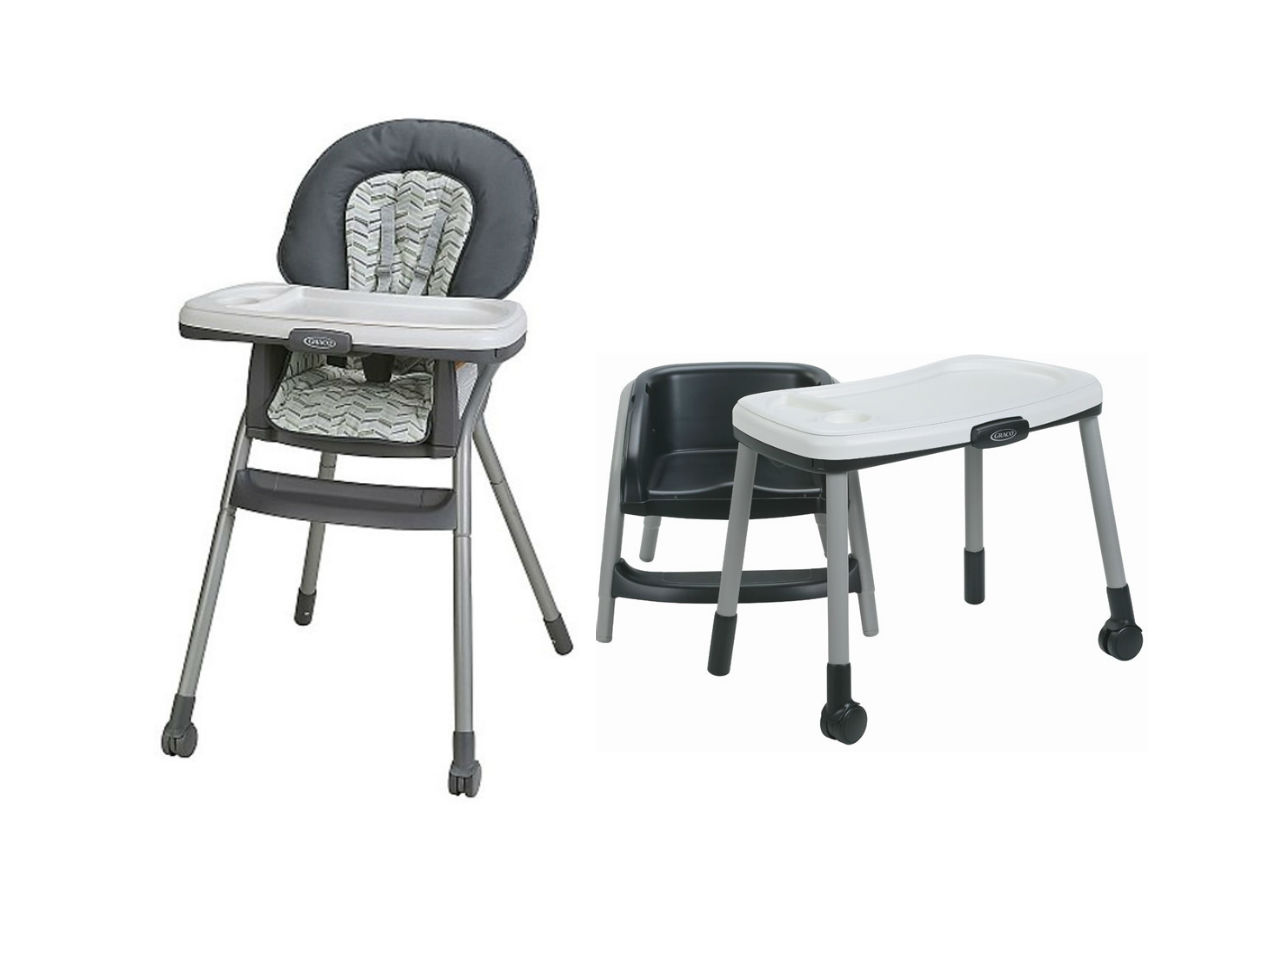 chair simpleswitch style zuba high baby mpn highchair graco highchairgraco